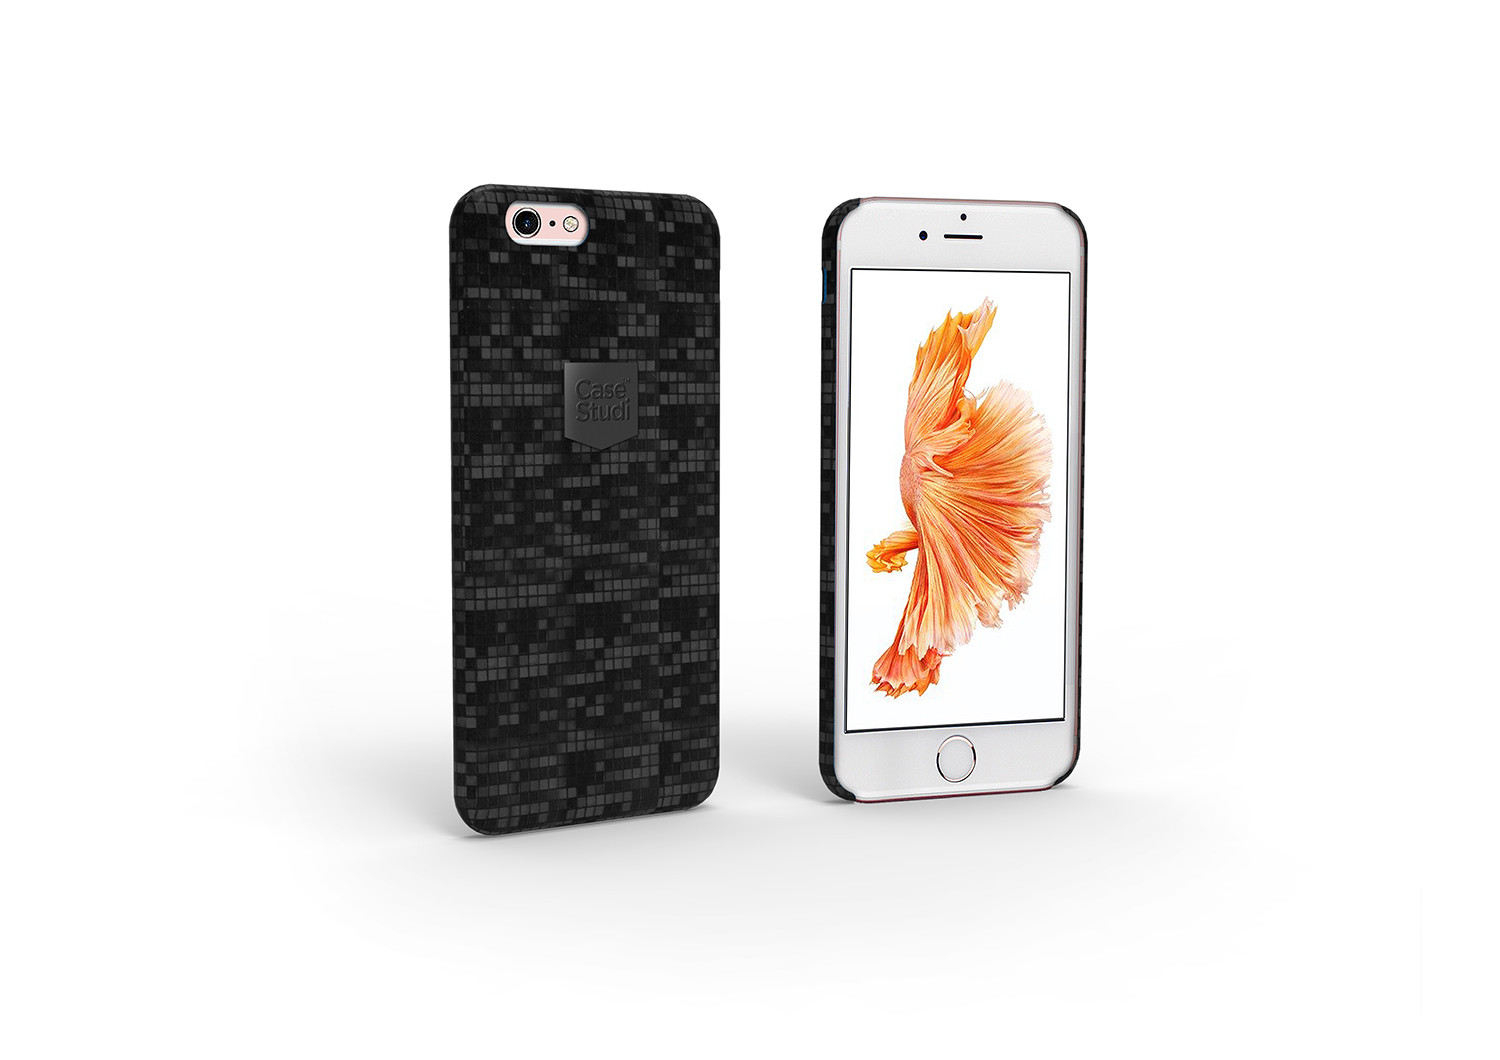 UltraSlim iPhone 6 / 6s case - Pixel